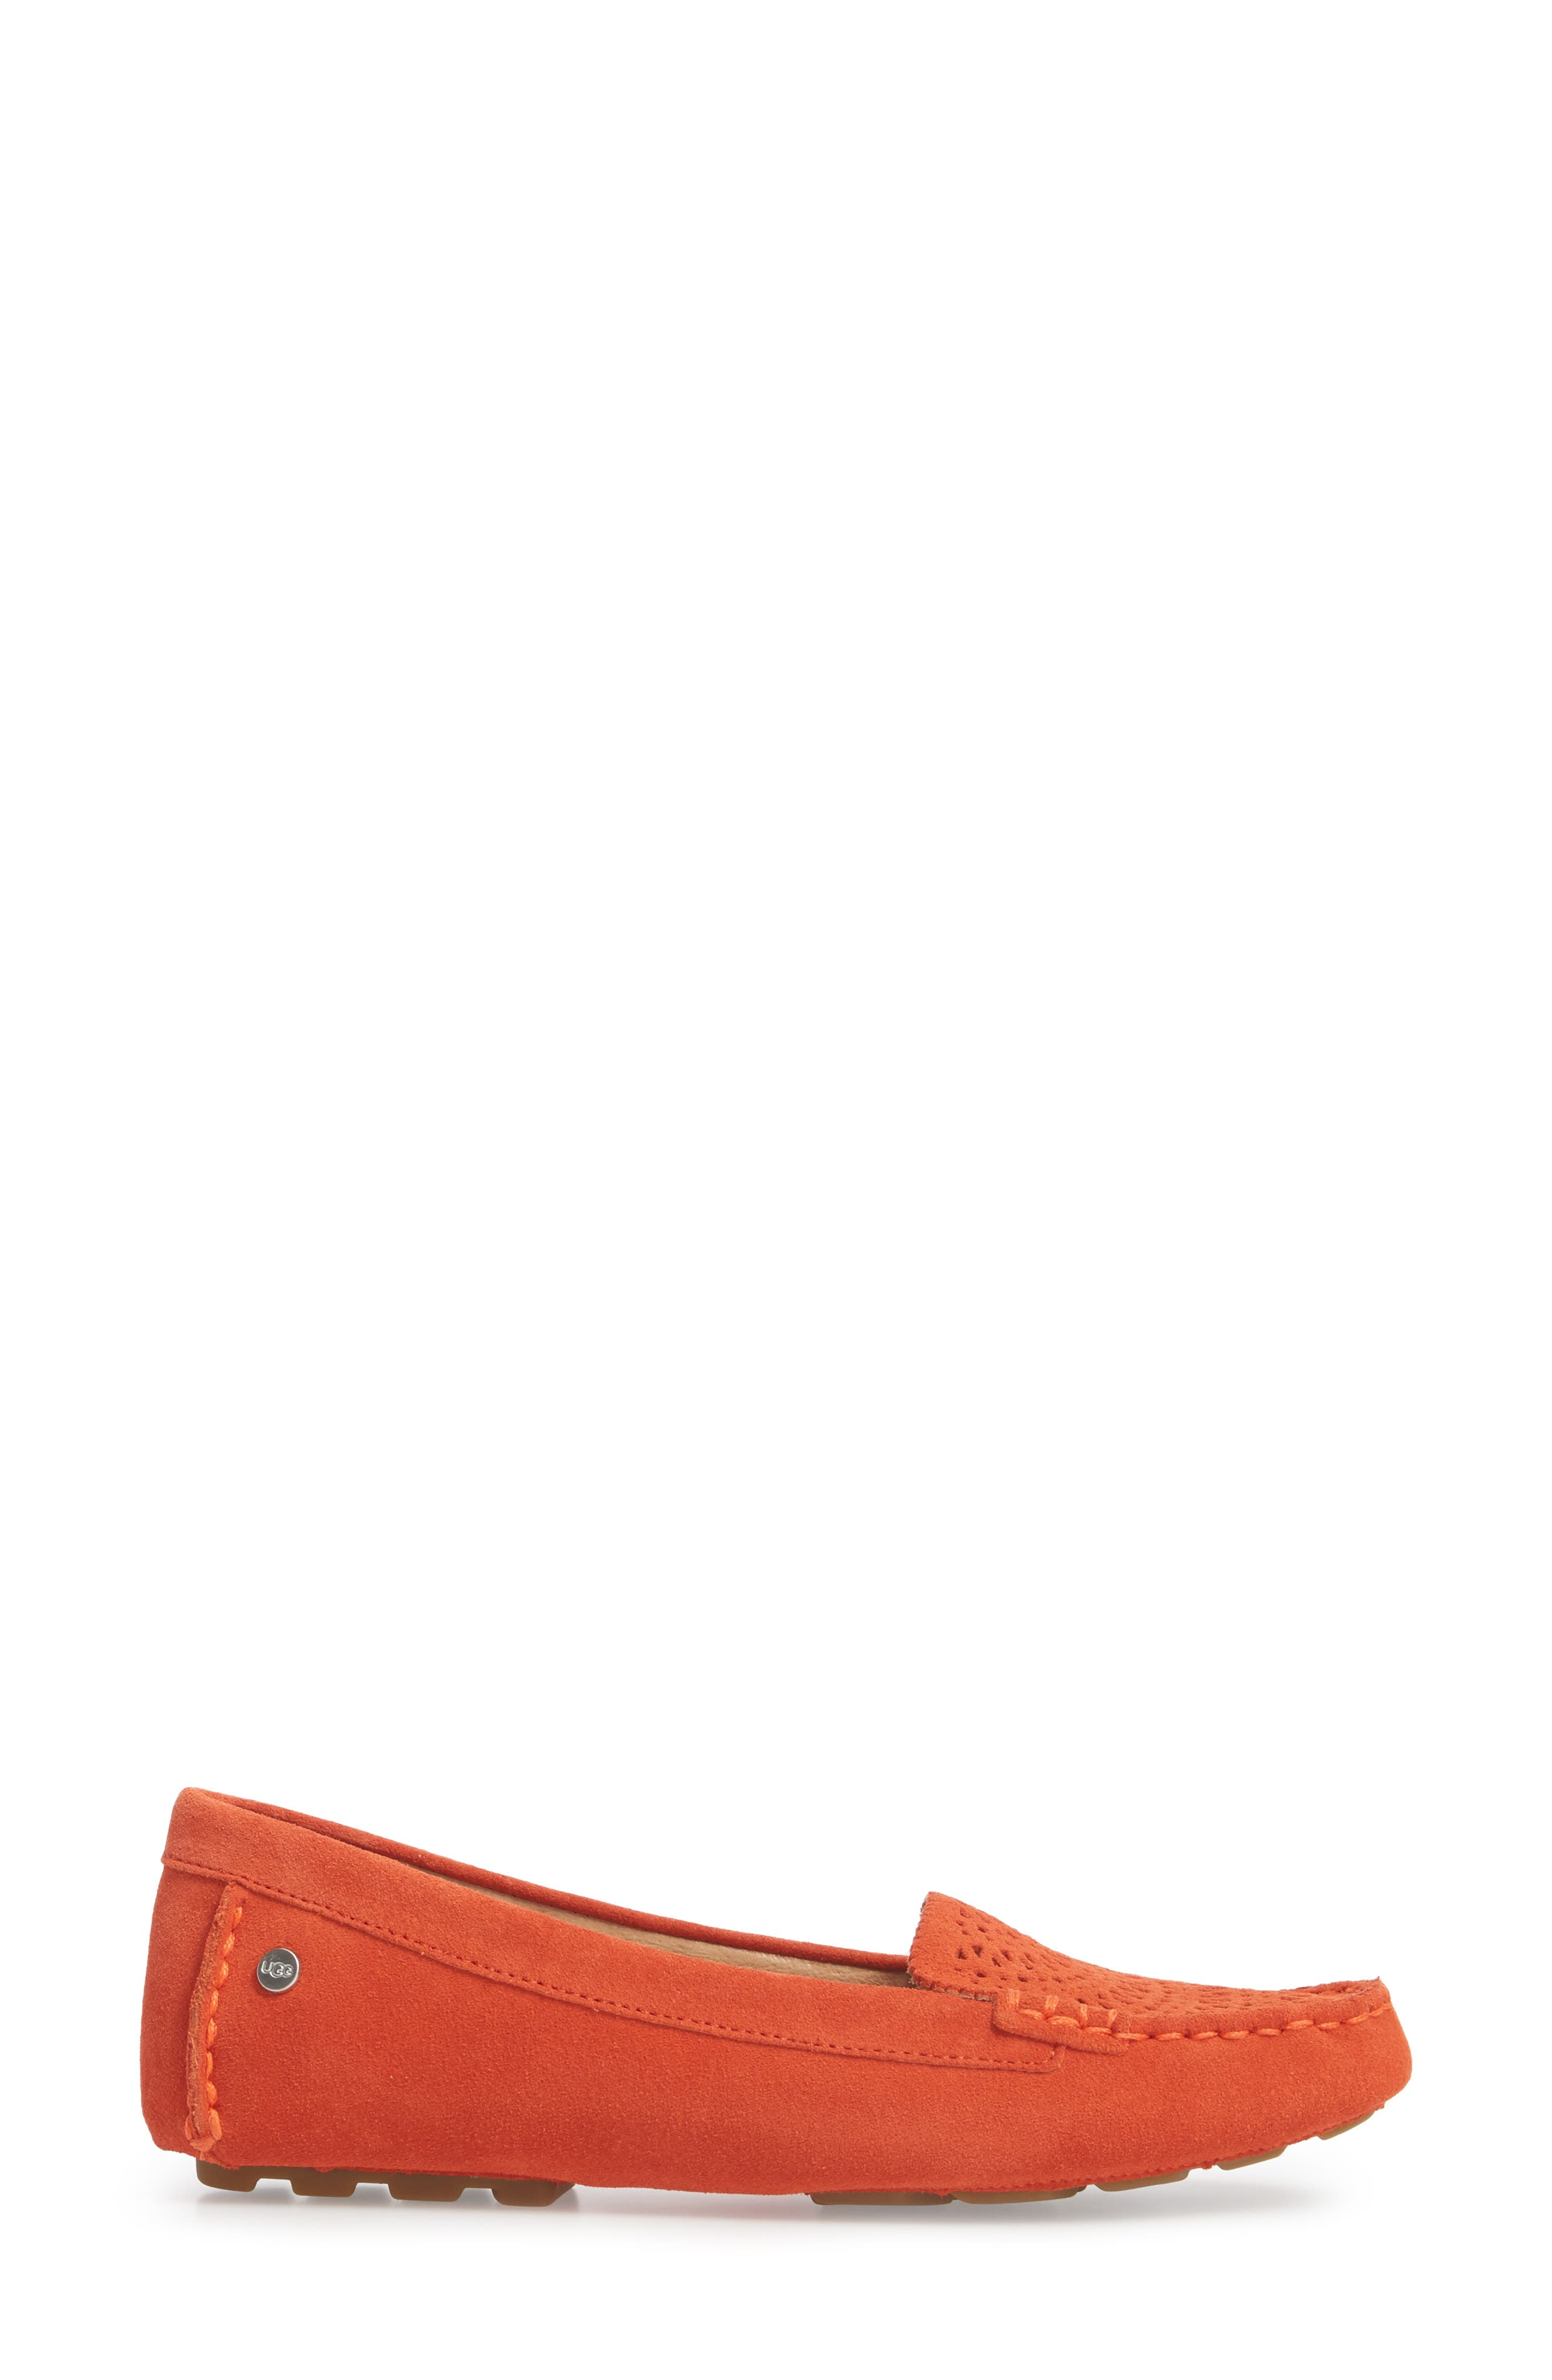 Clair Flat,                             Alternate thumbnail 3, color,                             Red Orange Suede